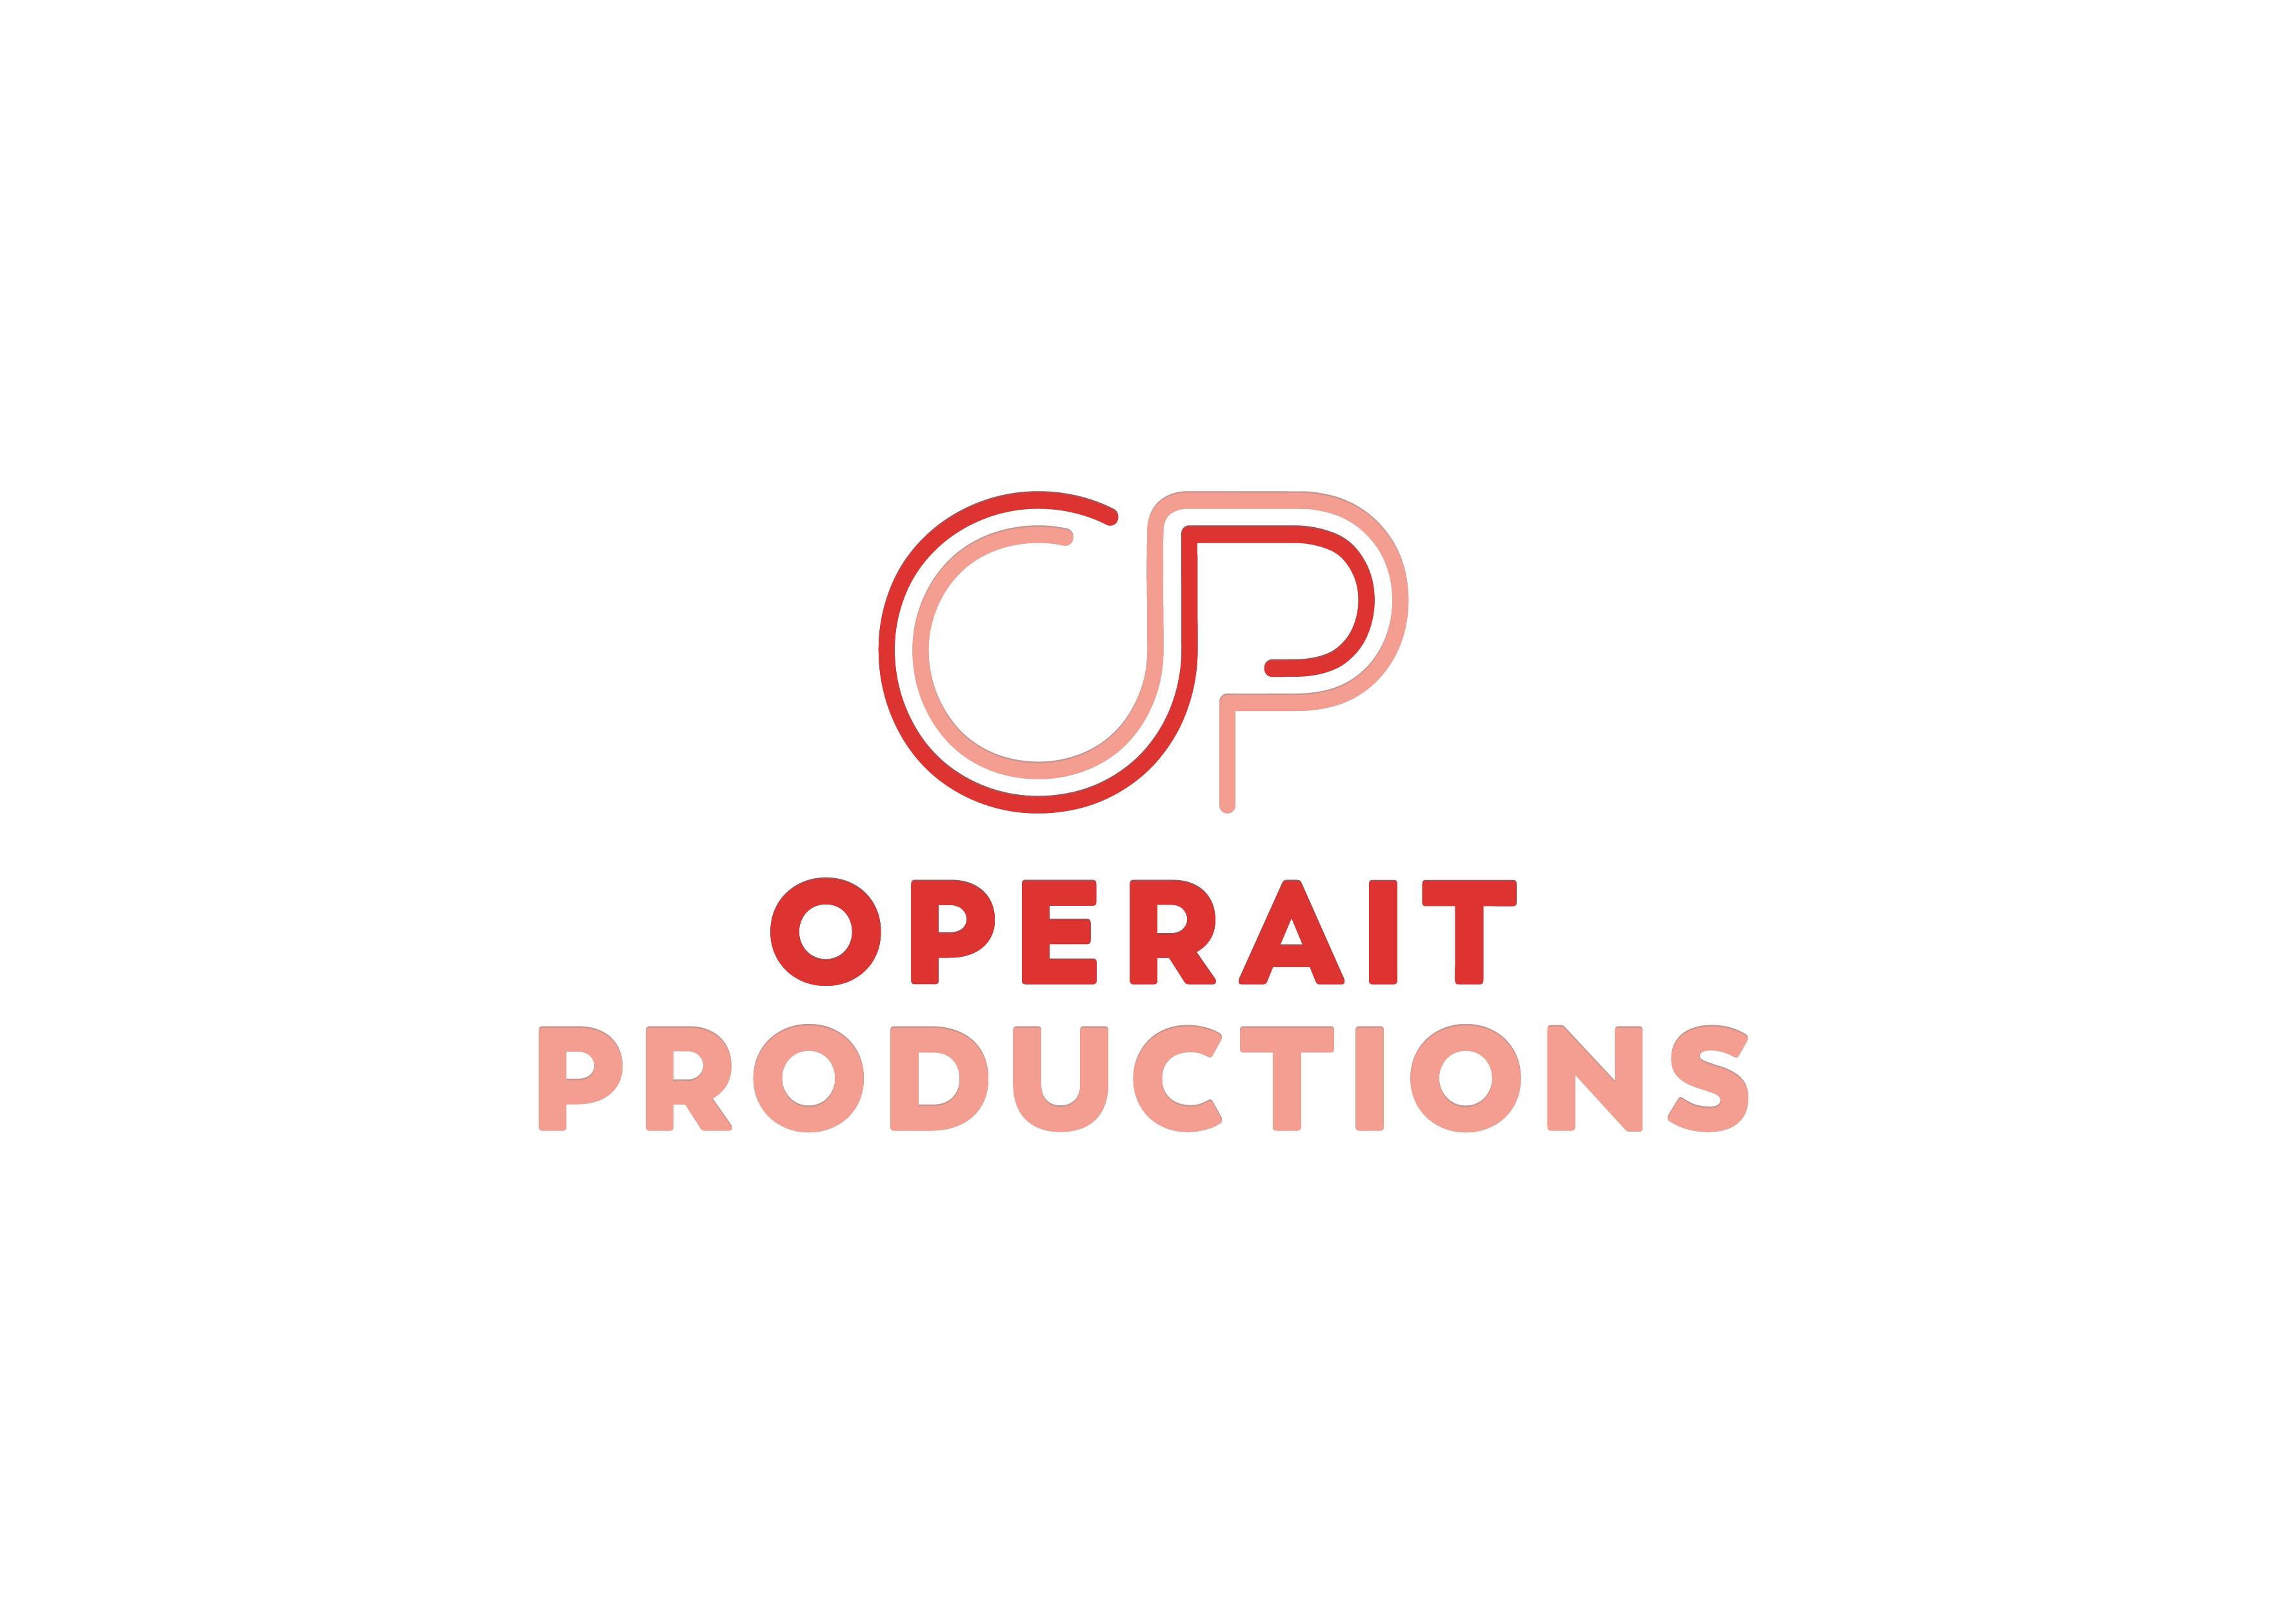 Operait_Productions_stacked-01